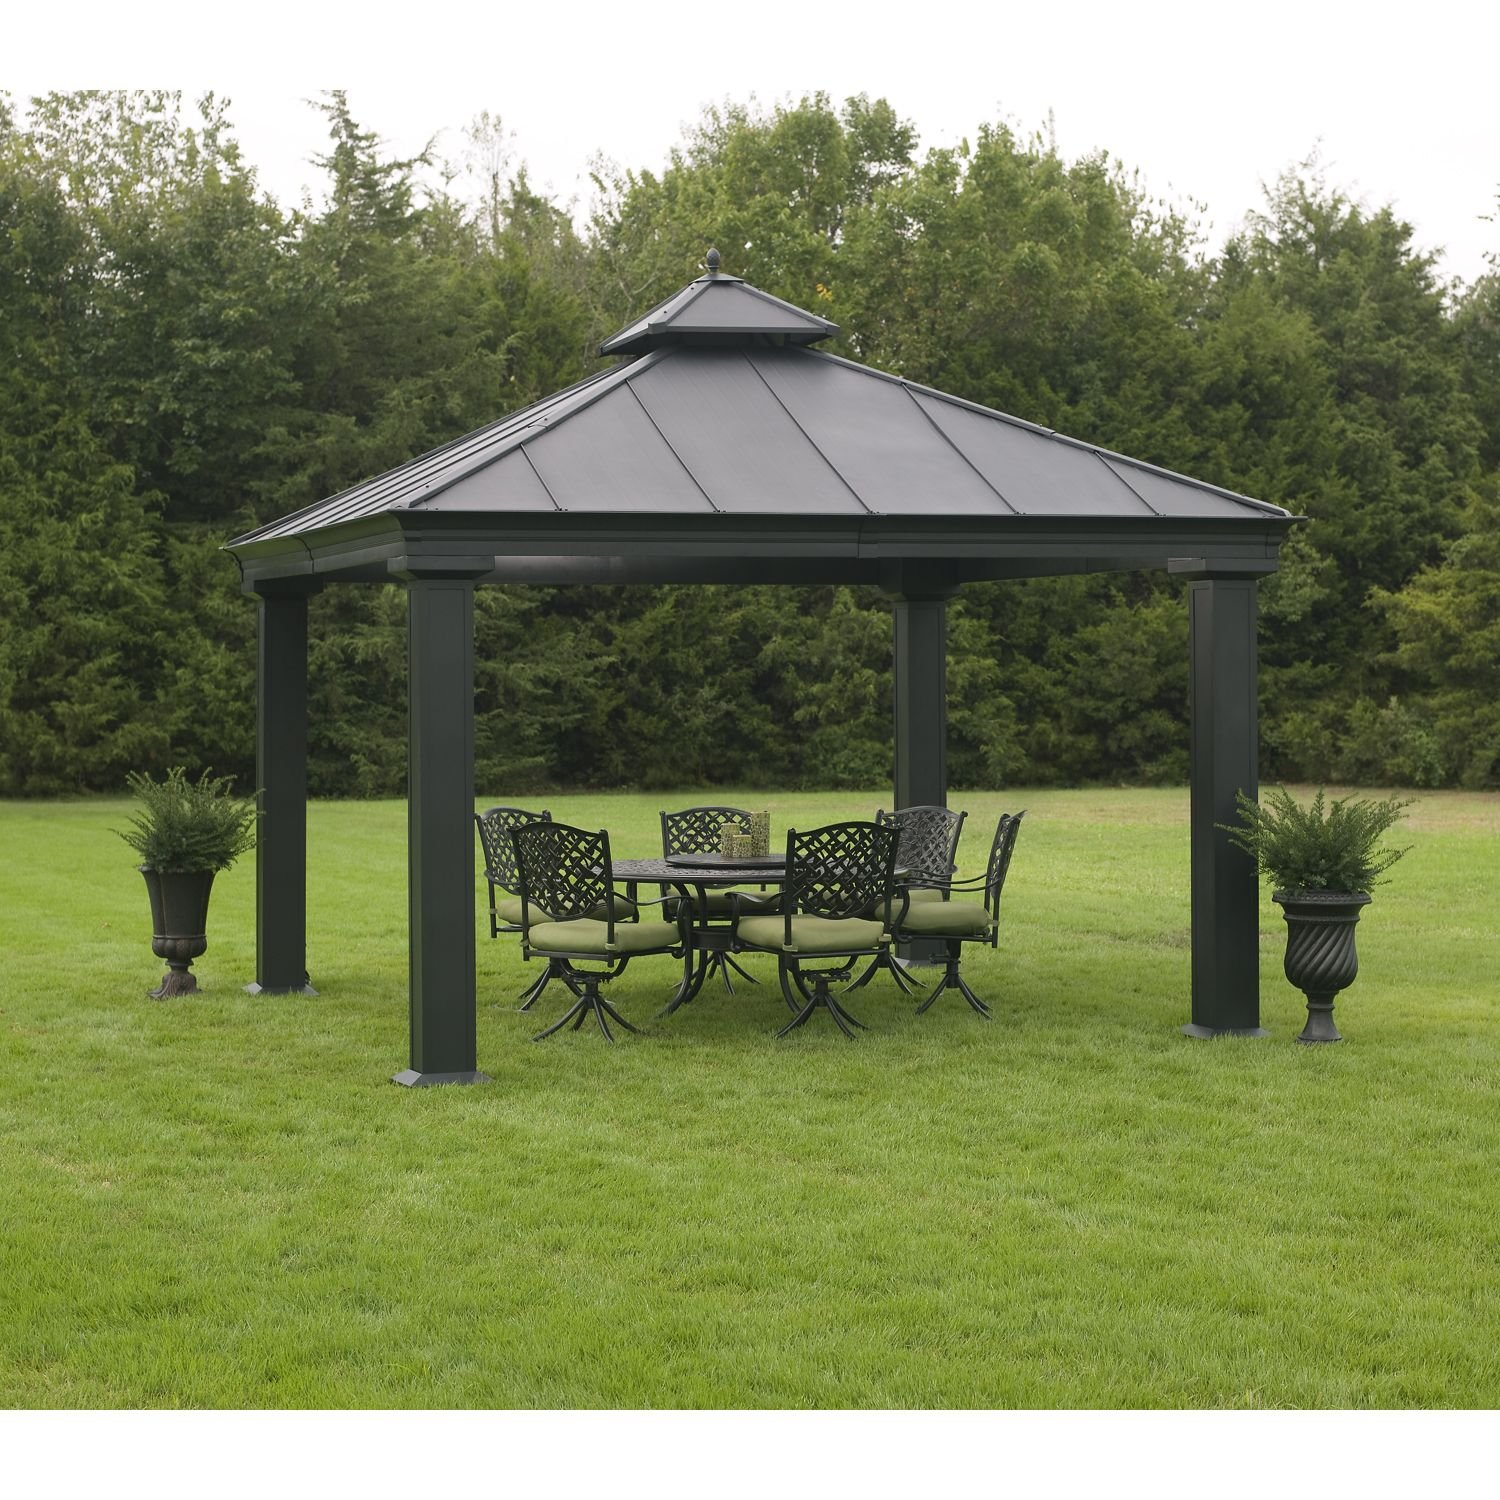 Amazon Royal Hardtop Gazebo Garden & Outdoor